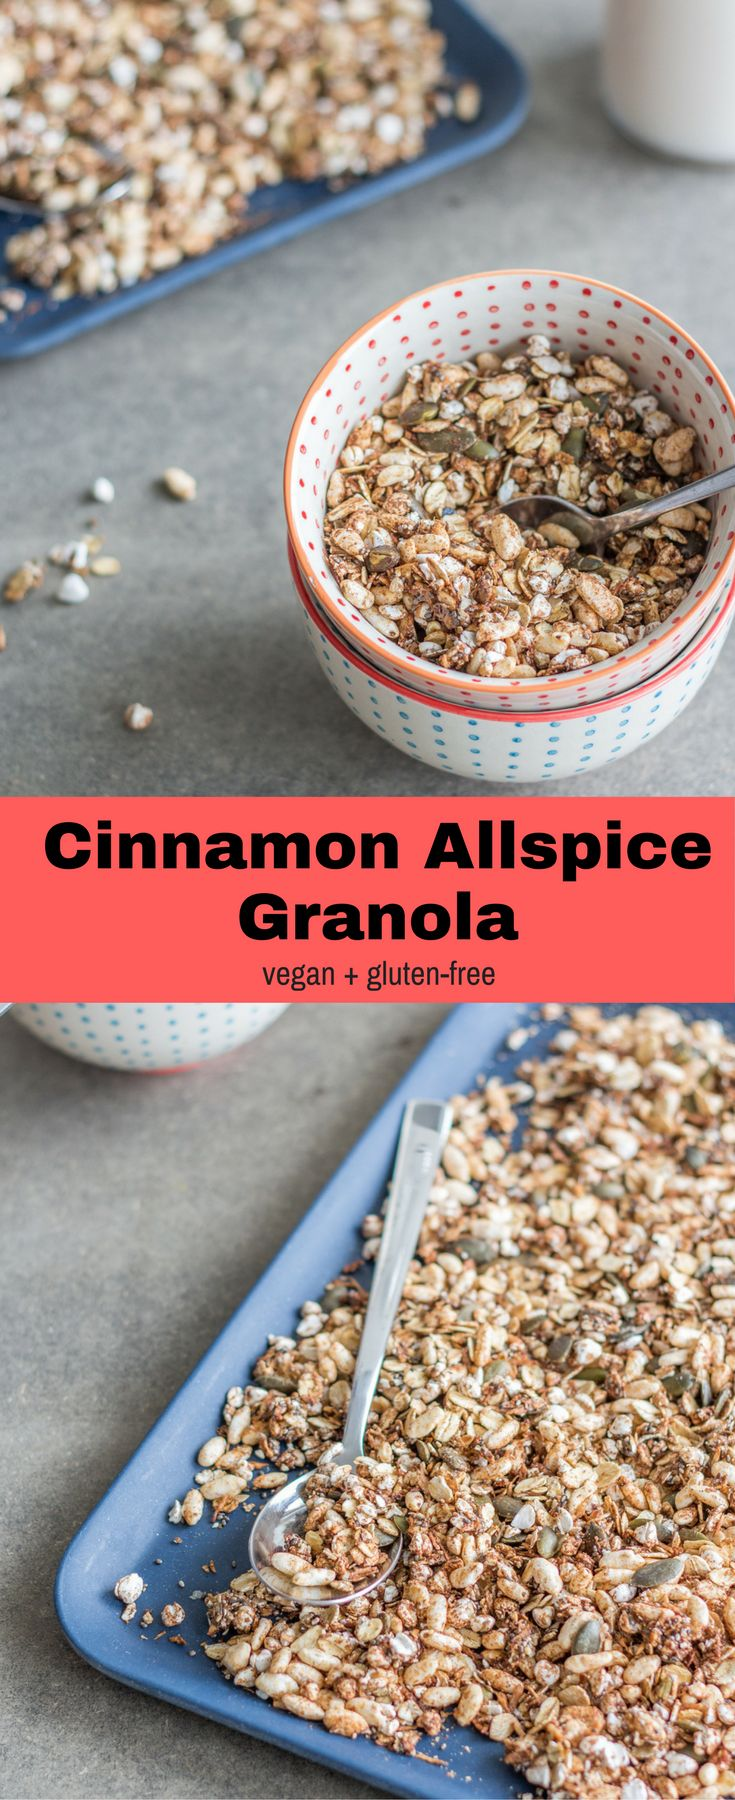 This Cinnamon Allspice Granola is super simple, crunchy, flavourful, and customisable. It's the perfect healthy breakfast or snack. Vegan + gluten-free!Healthy vegan recipes | healthy  | vegan | snack | breakfast | recipes | vegetarian | The Mostly Healthy |